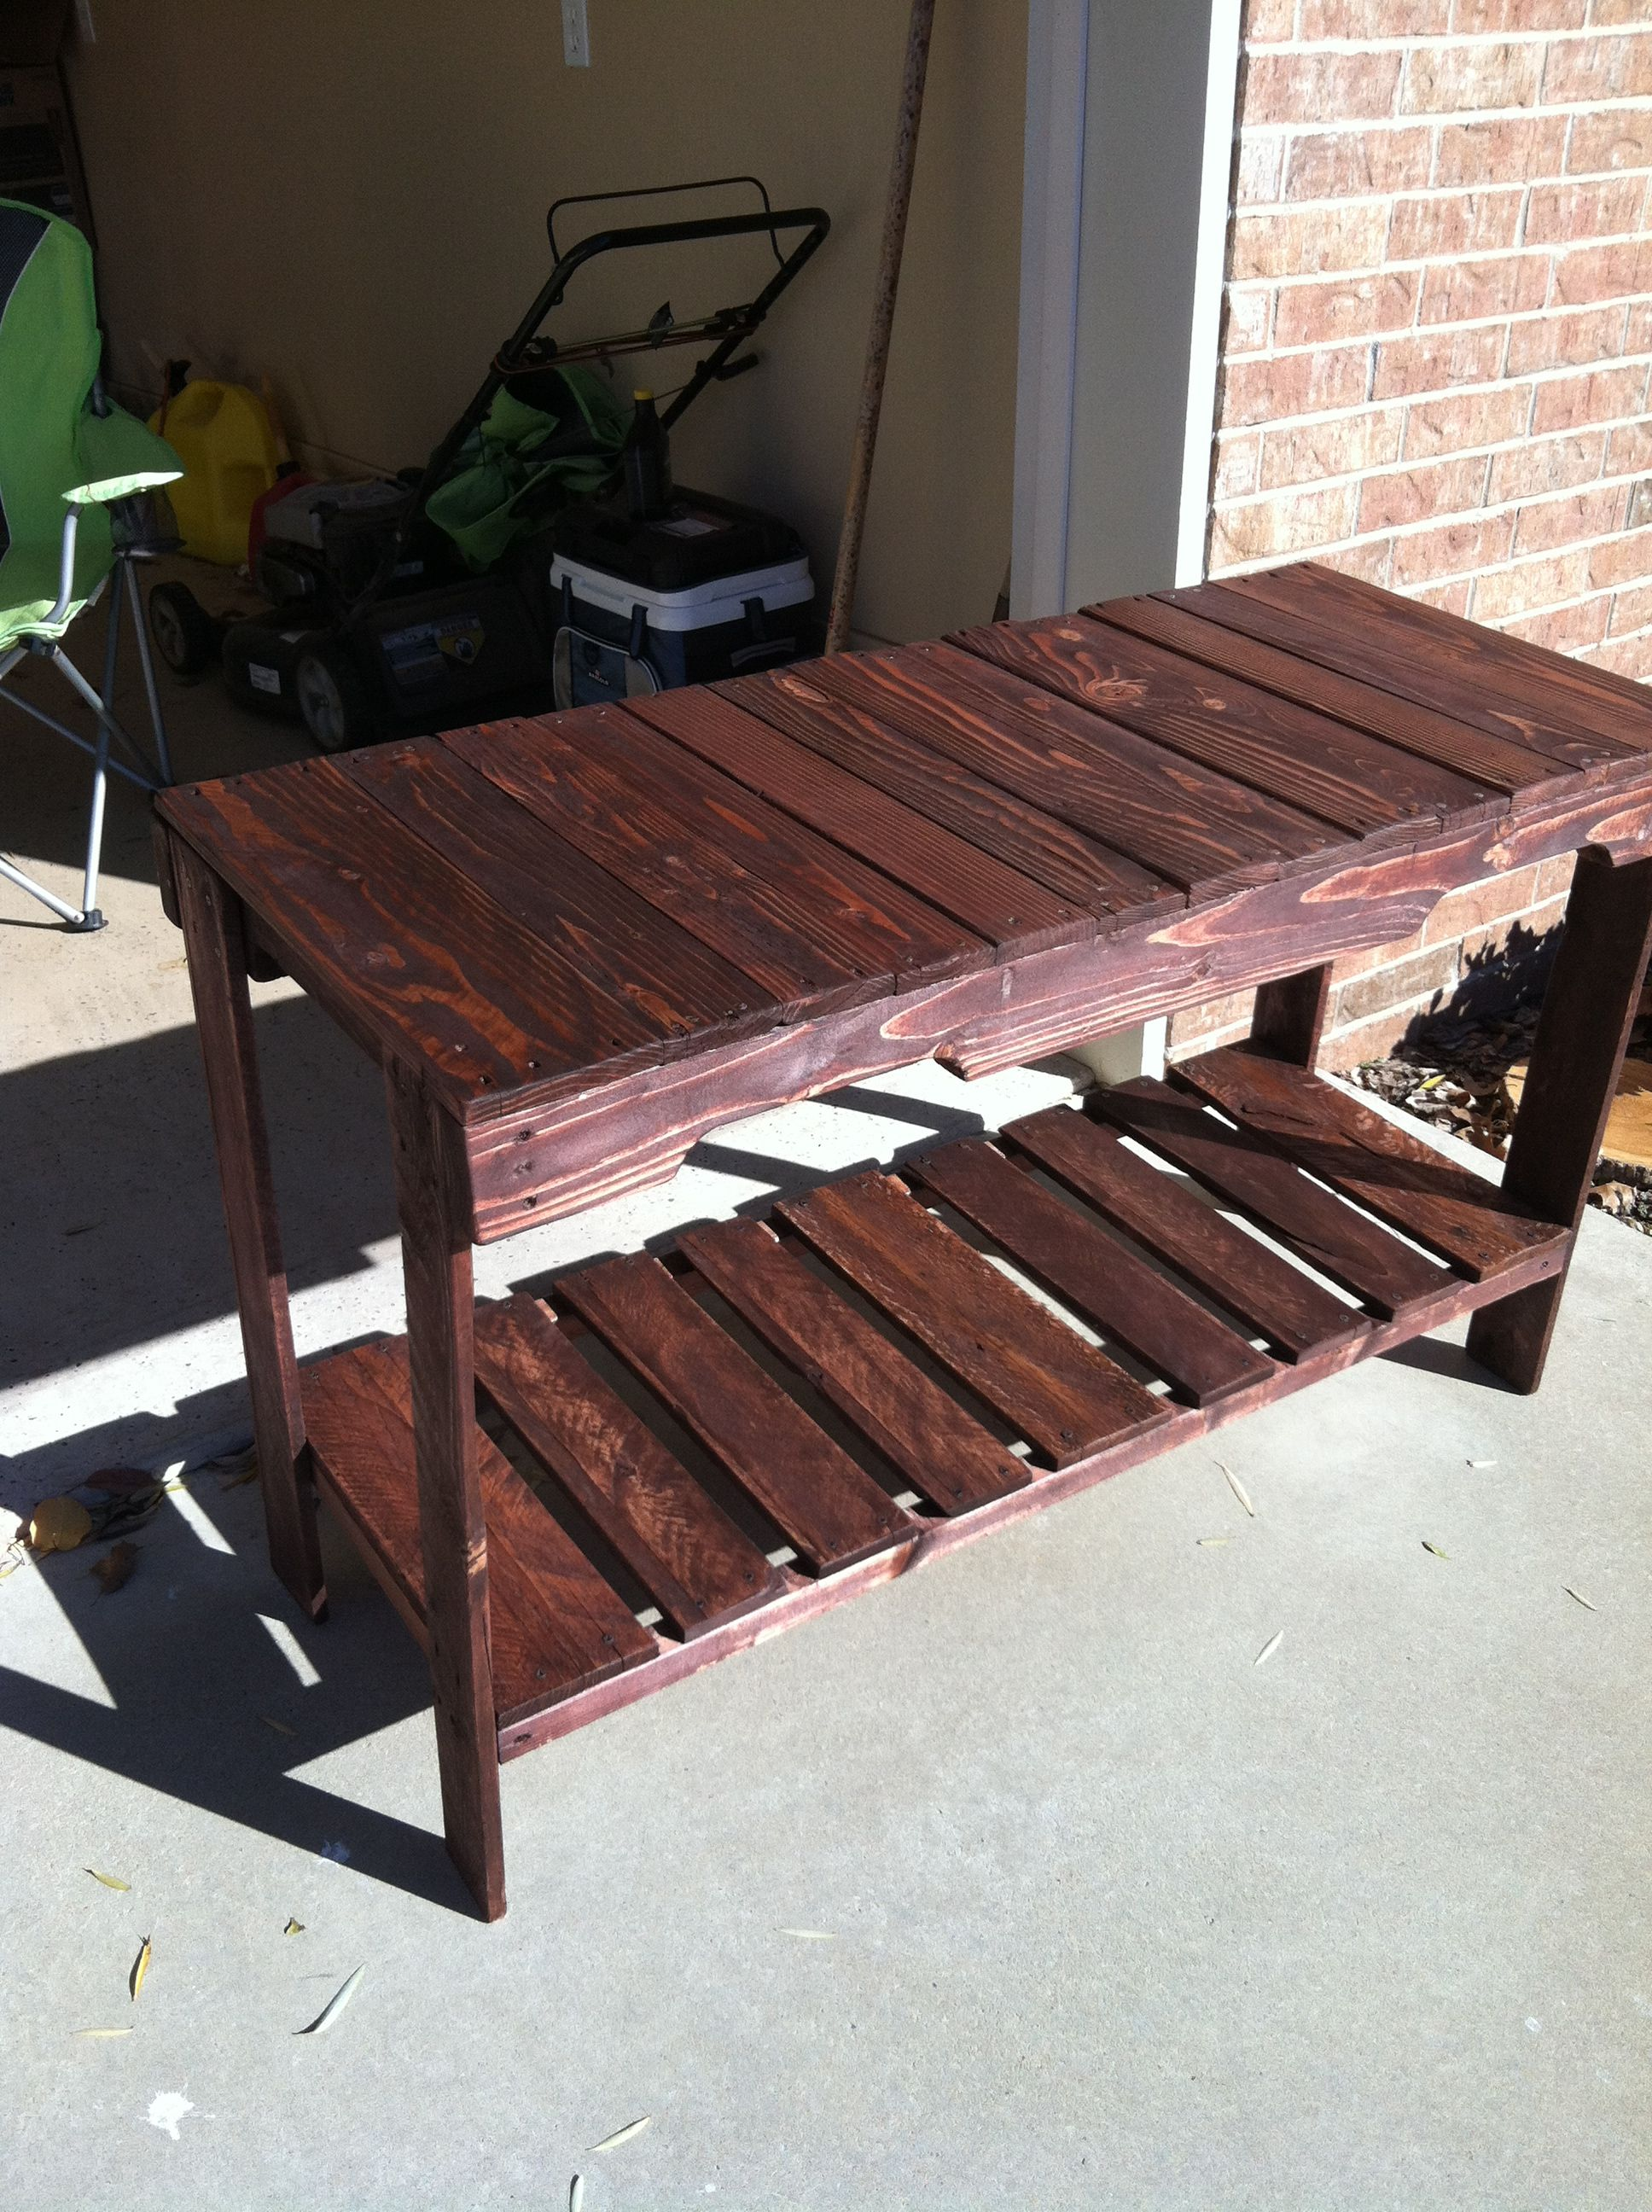 Diy Pallet Sofa Table Instructions Turns Into Bunk Beds Imperfect Creations Pinterest